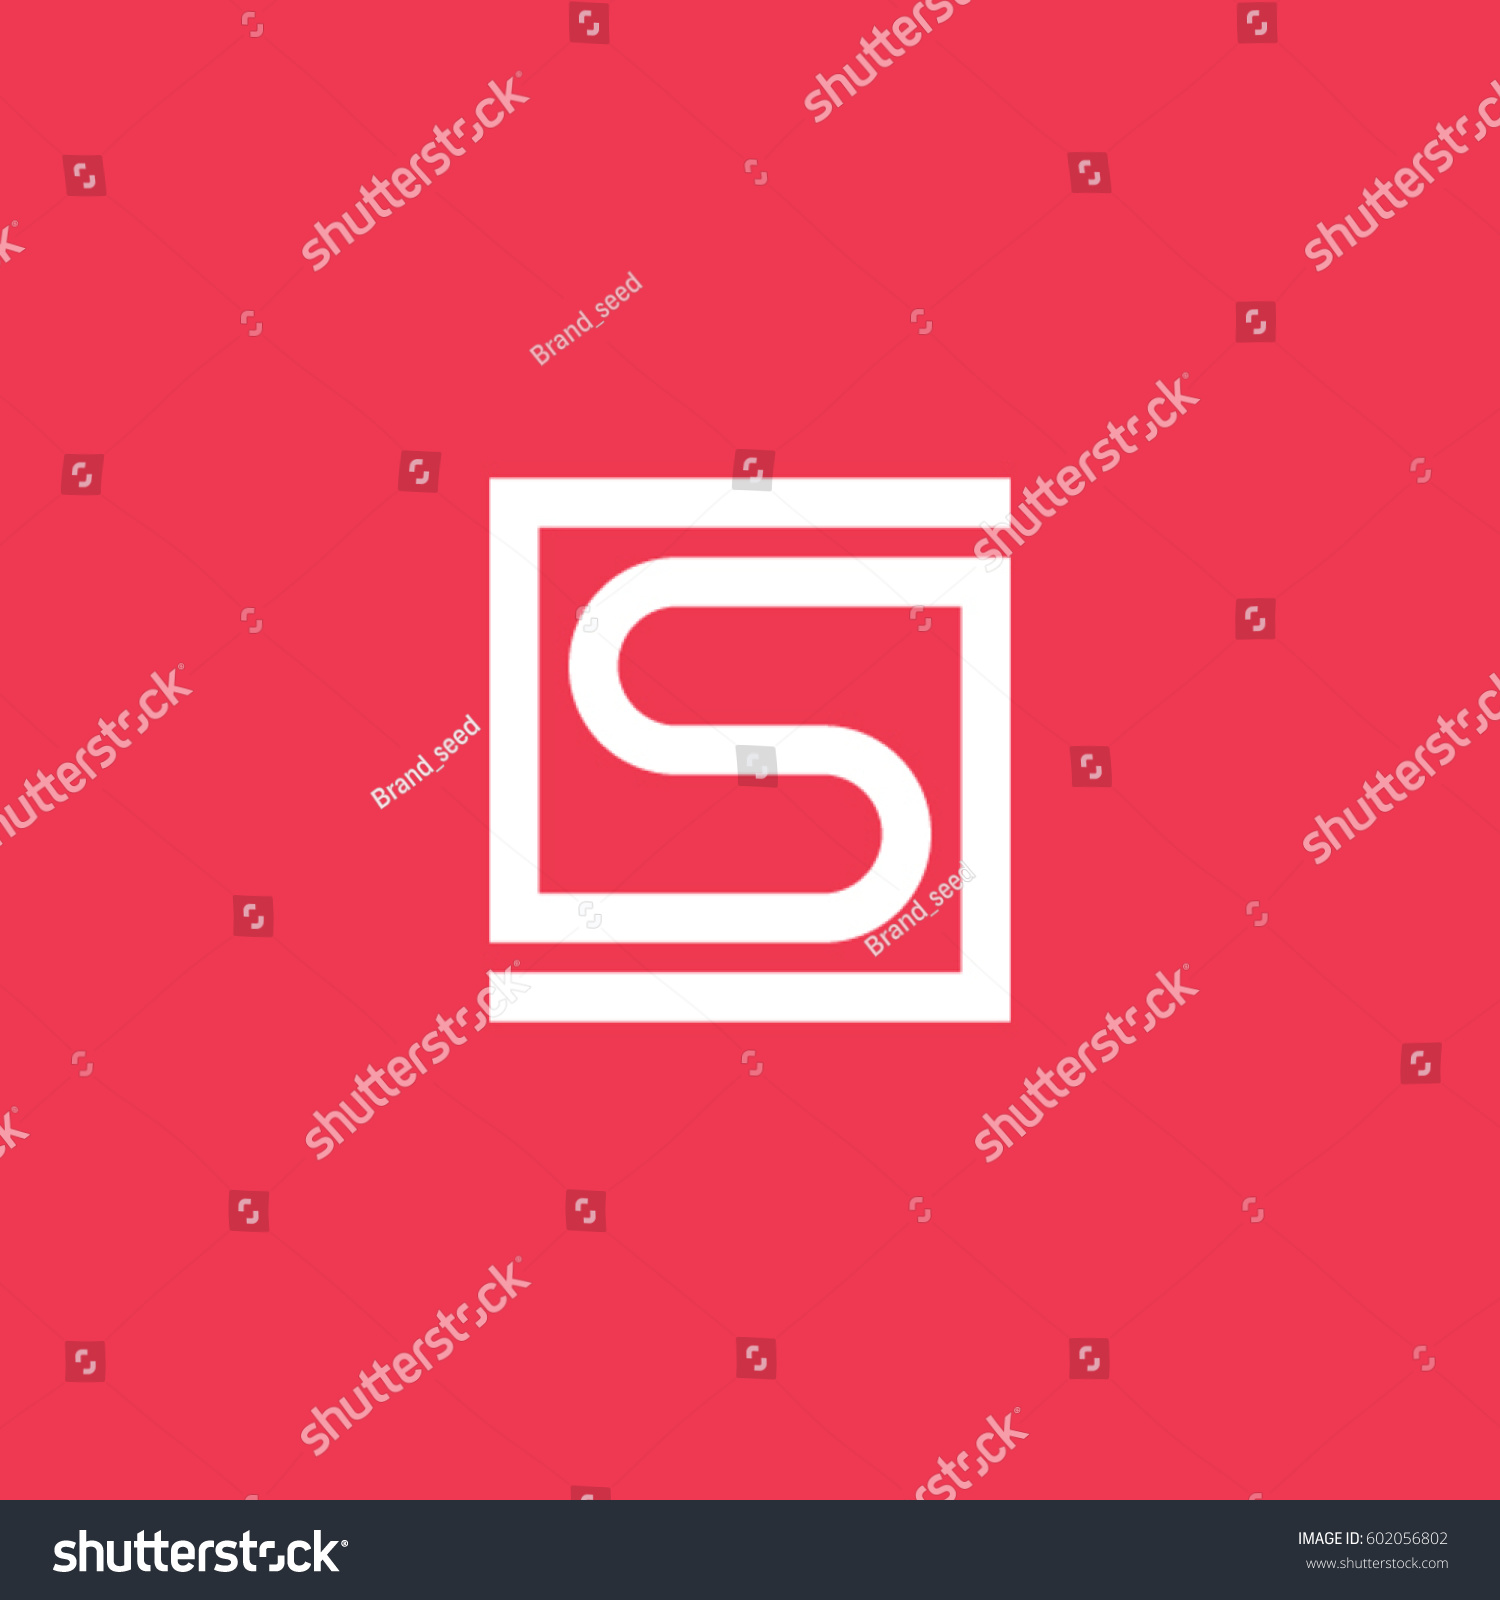 Ps symbol ps letter character typeface stock vector 602056802 ps symbol ps letter character typeface p s sign icon buycottarizona